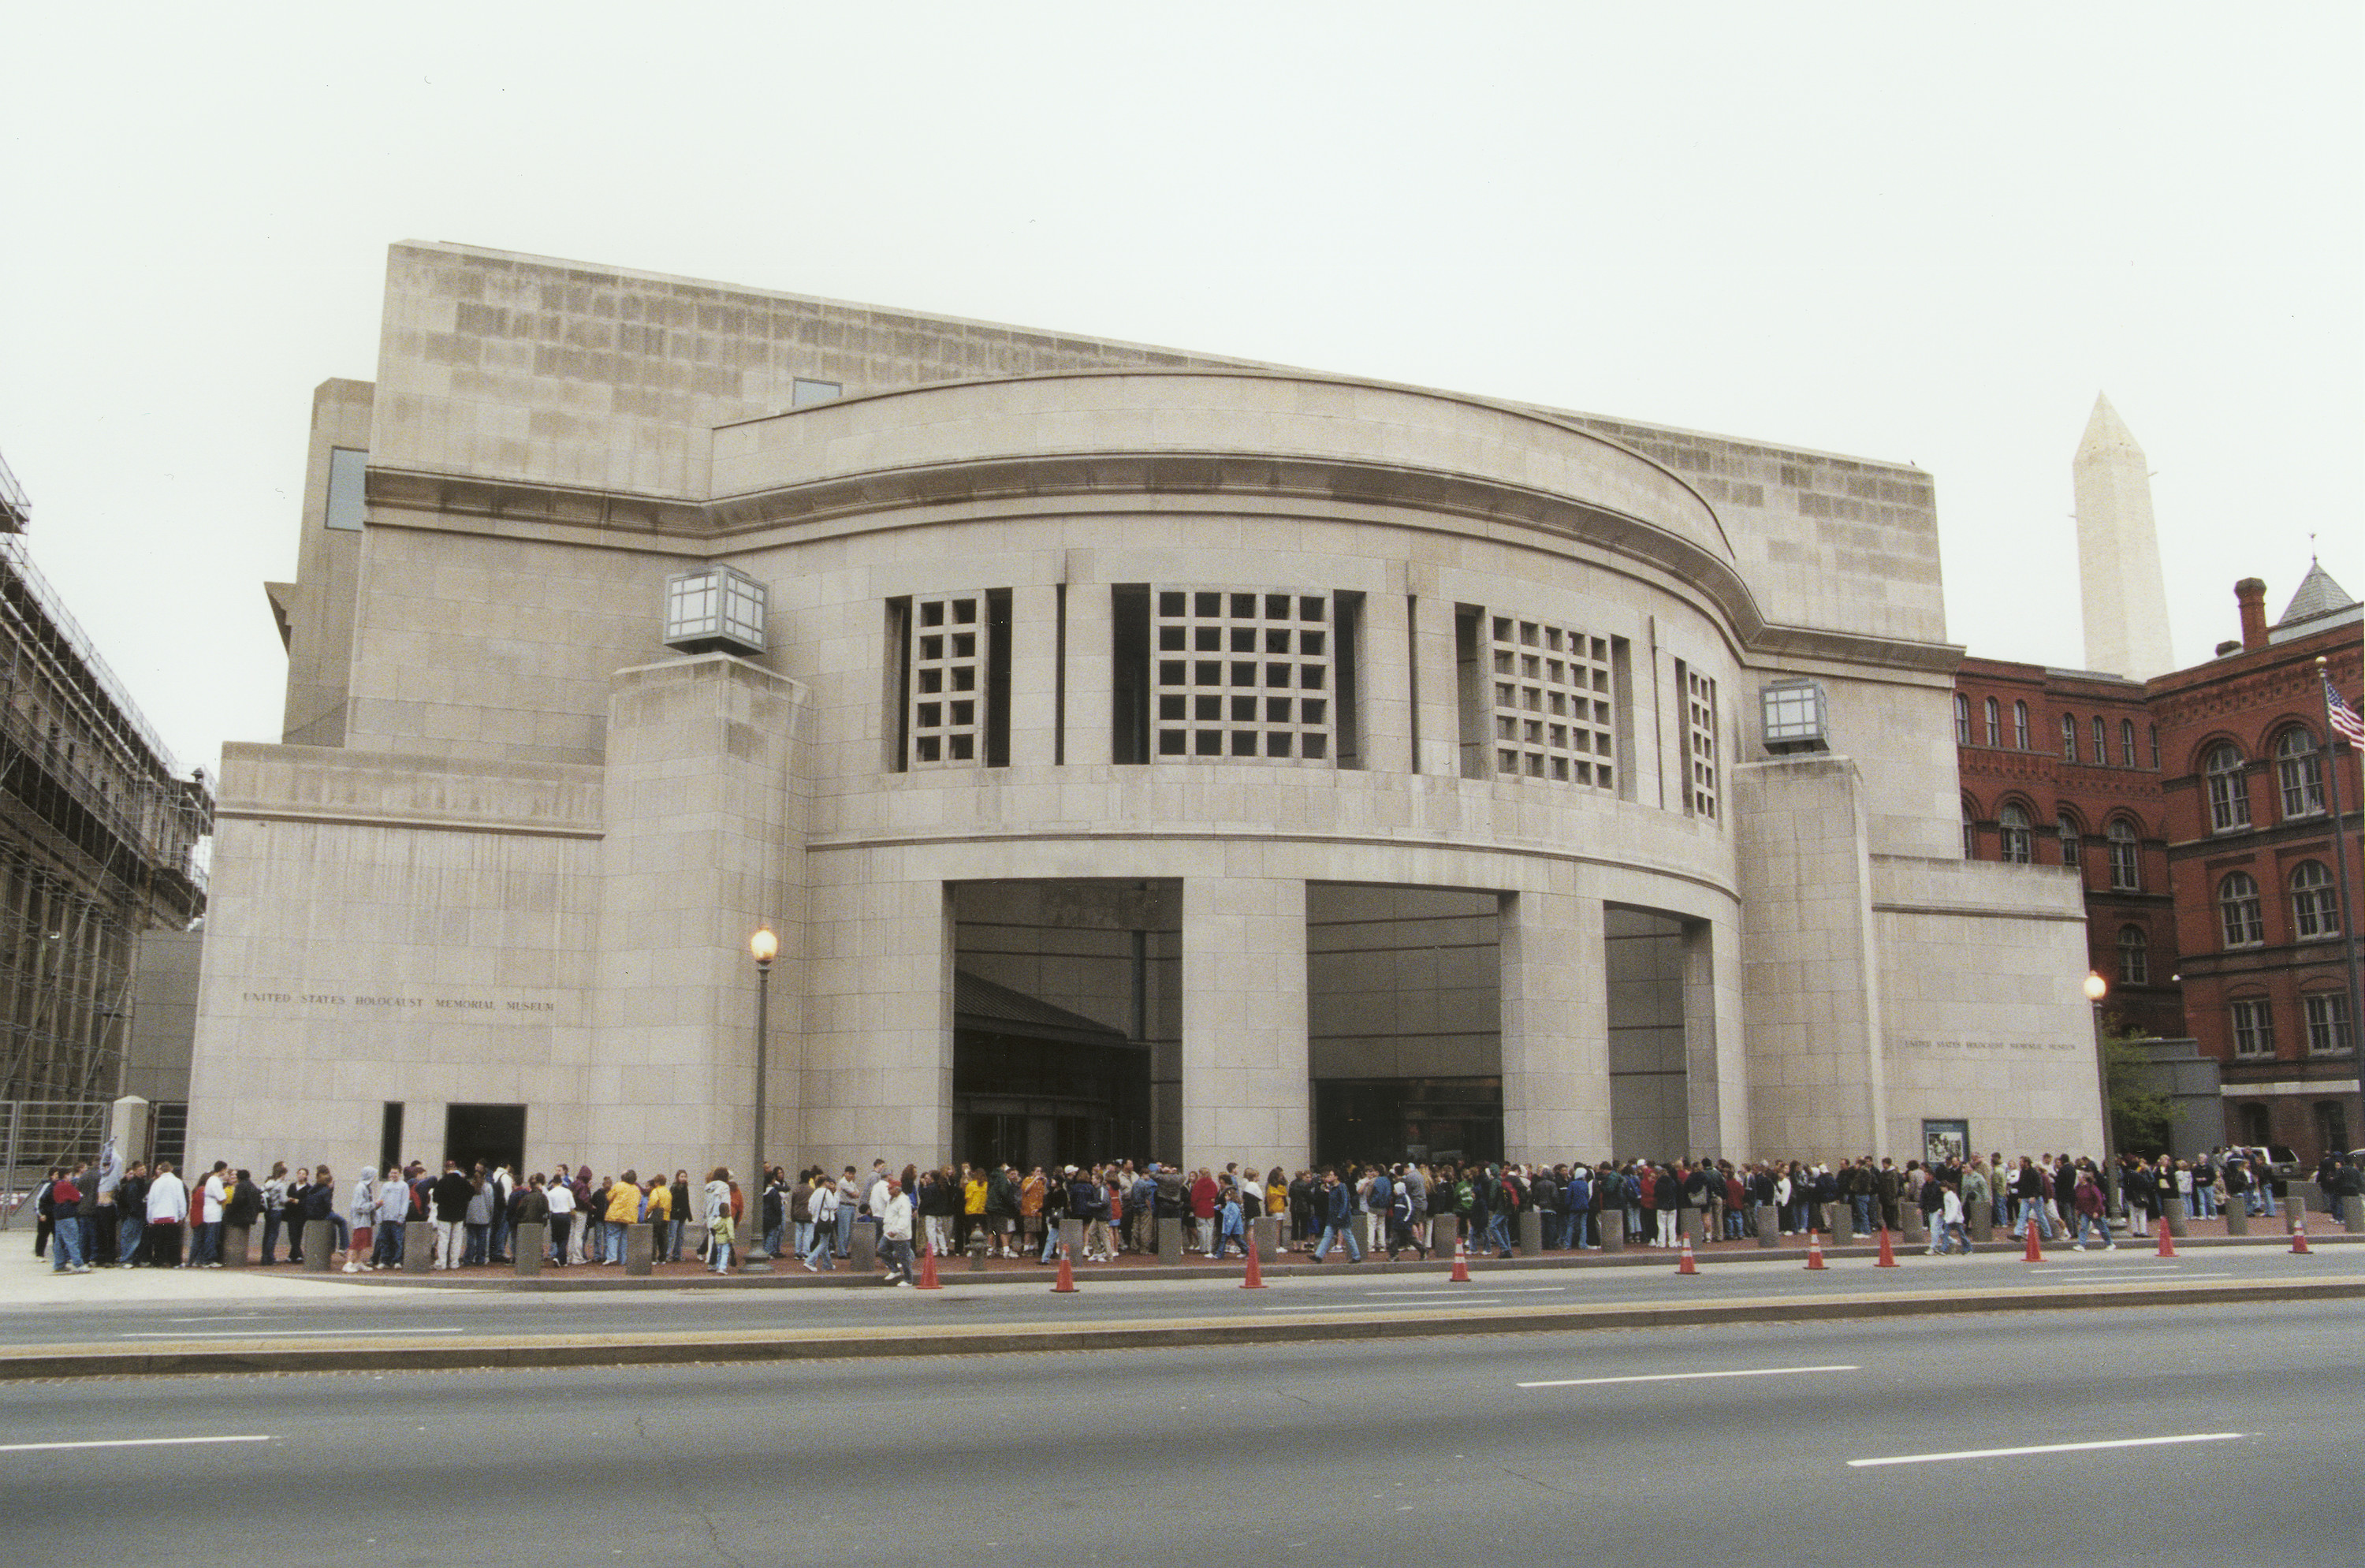 Visitors line up in front of the 14th Street entrance to the U.S. Holocaust Memorial Museum.